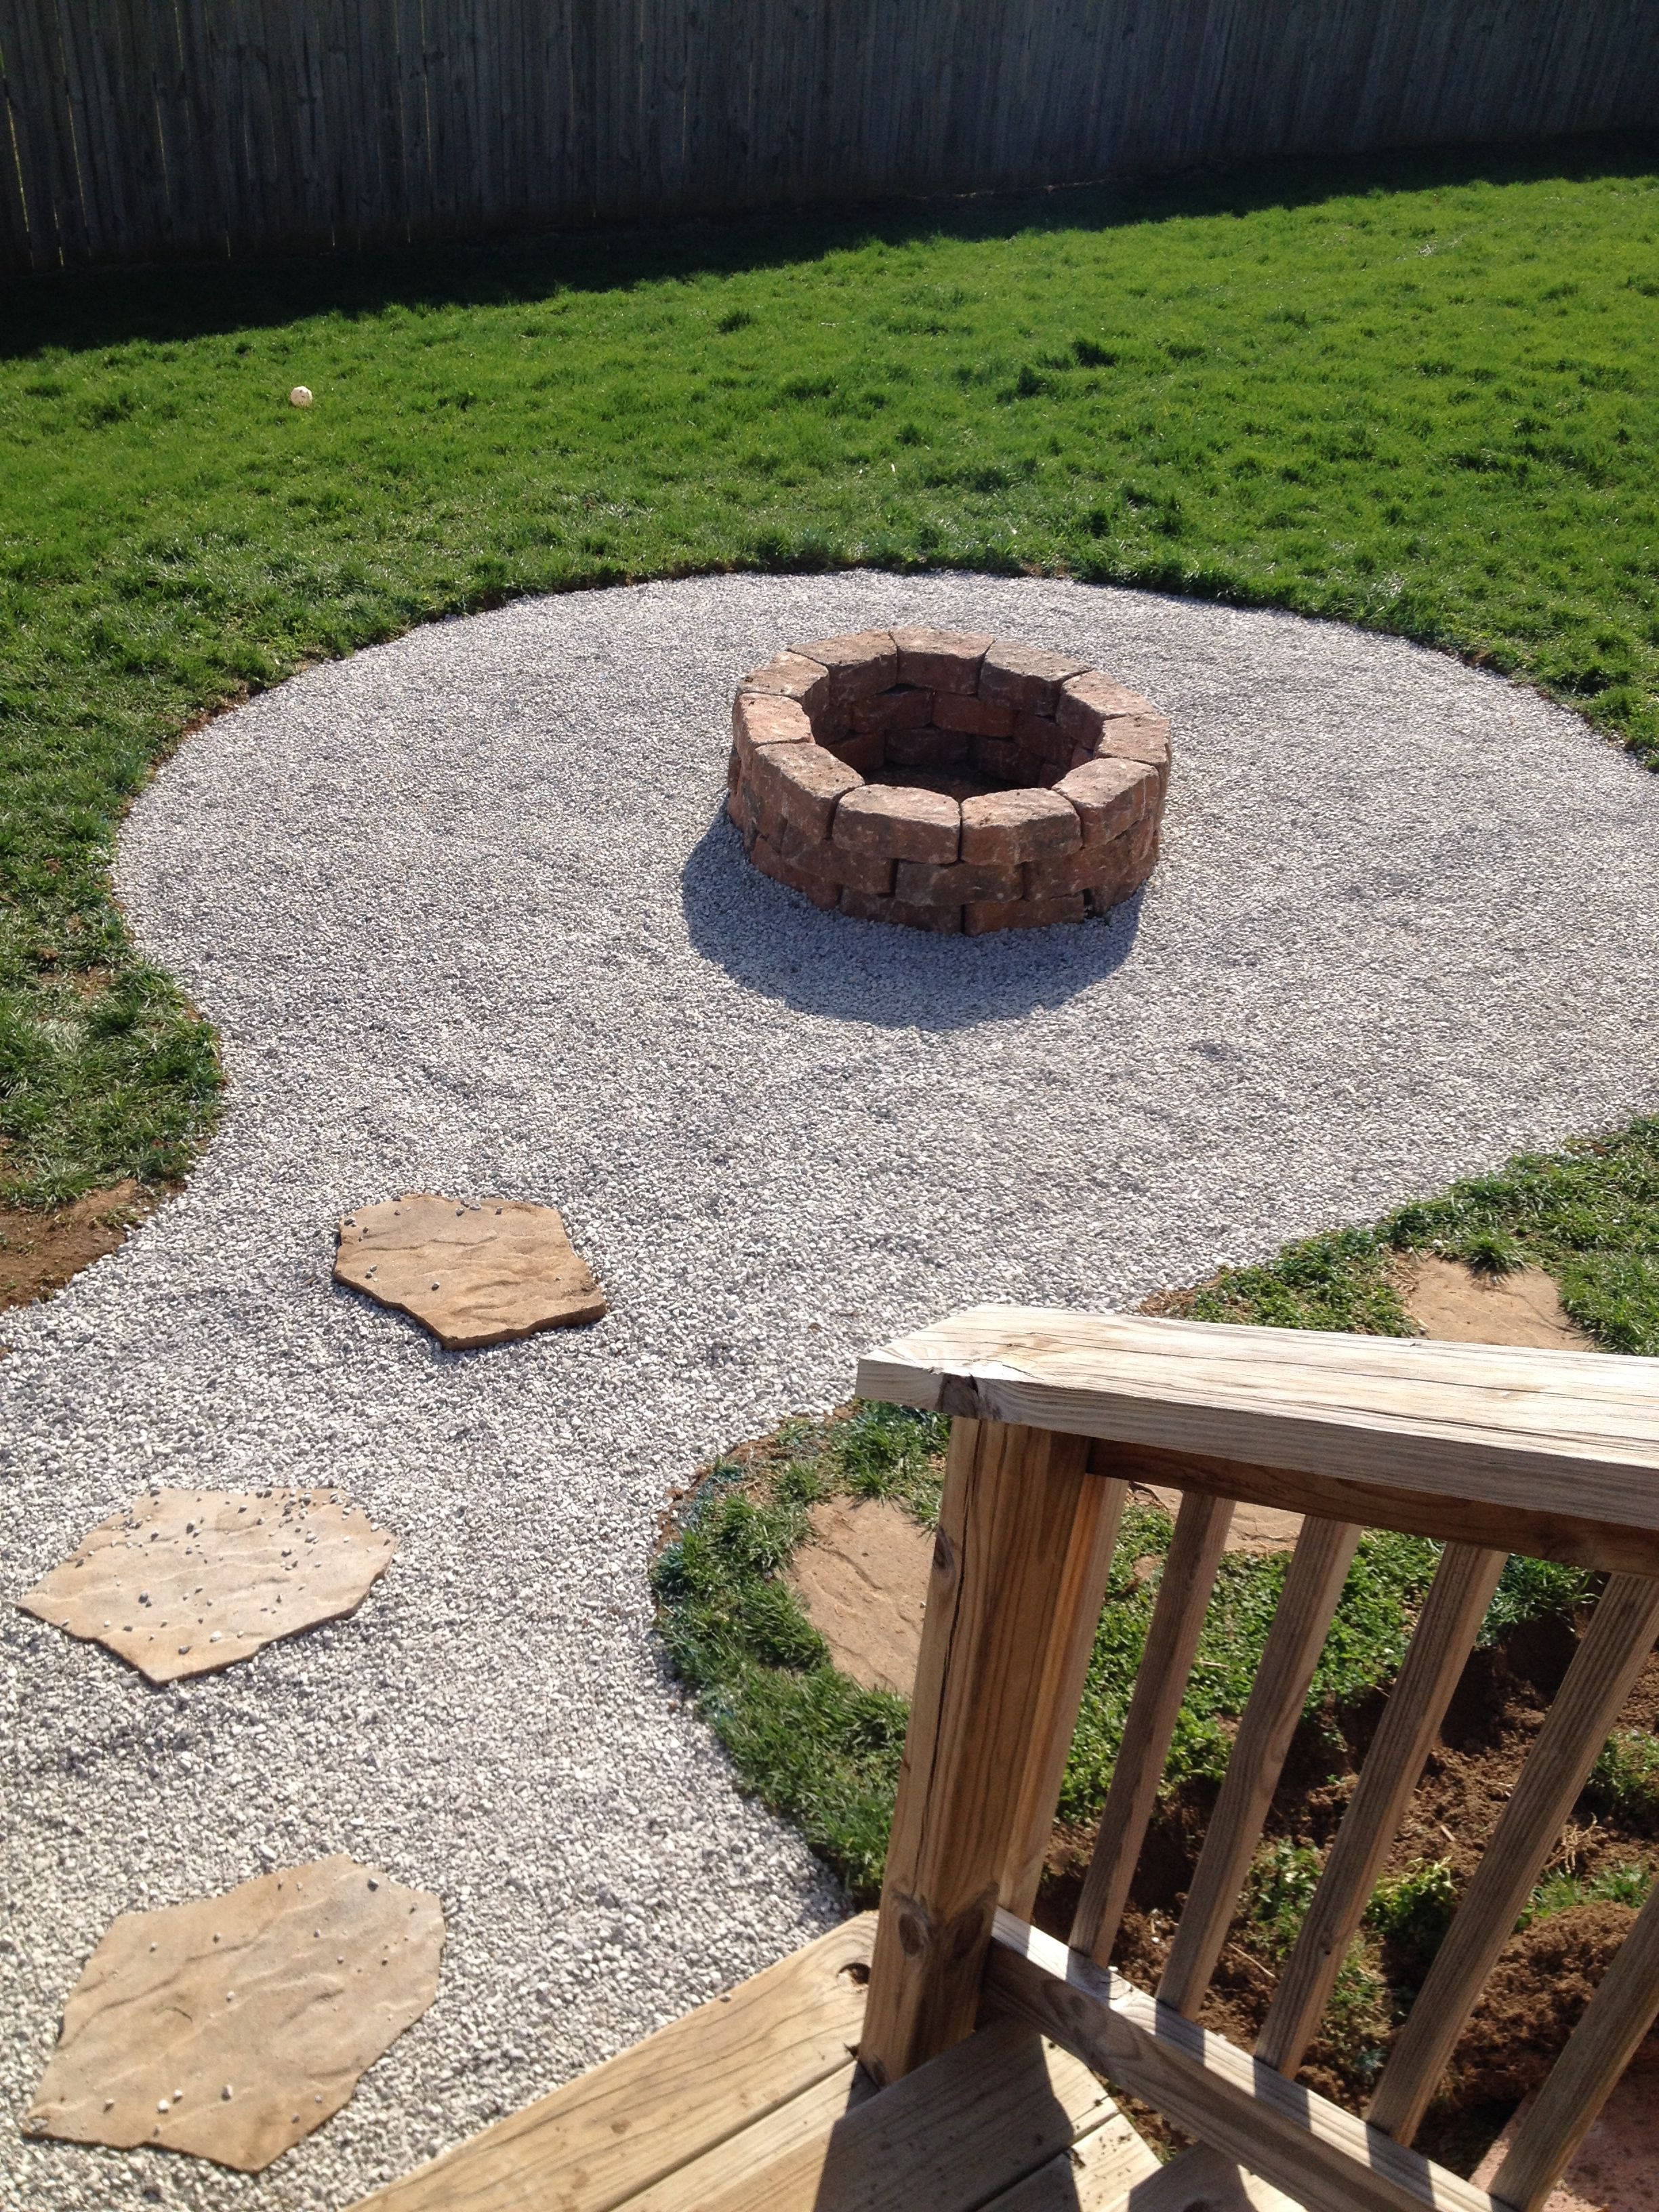 My Backyard Firepit With Seating Area Stones From Lowes 2 25 A Piece Need 30 And 2 Bags Of Pea Gravel Fire Pit Landscaping Backyard Fire Outside Fire Pits